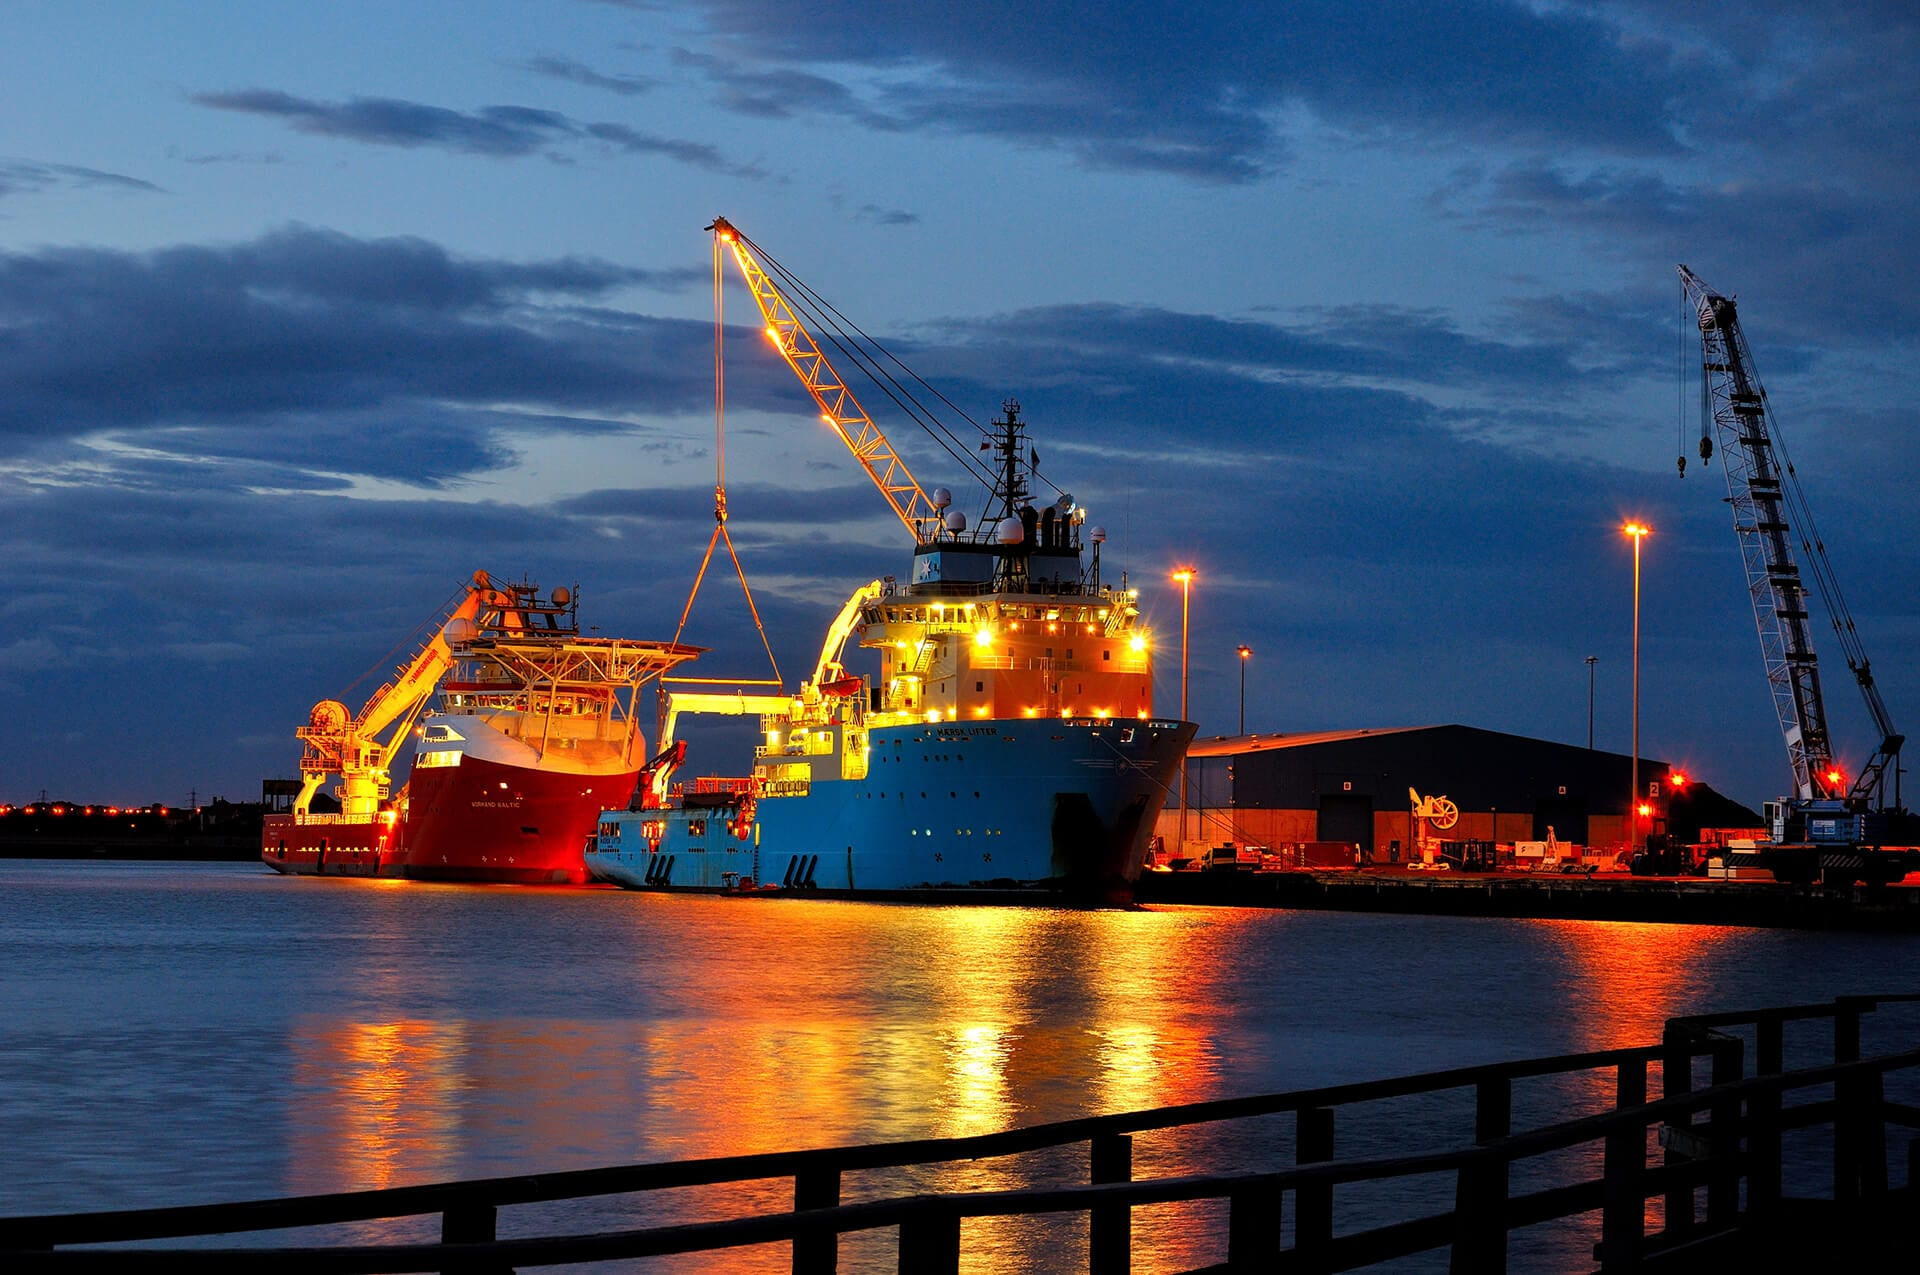 Container ships being loaded at dusk from the Port of Blyth, Northumberland